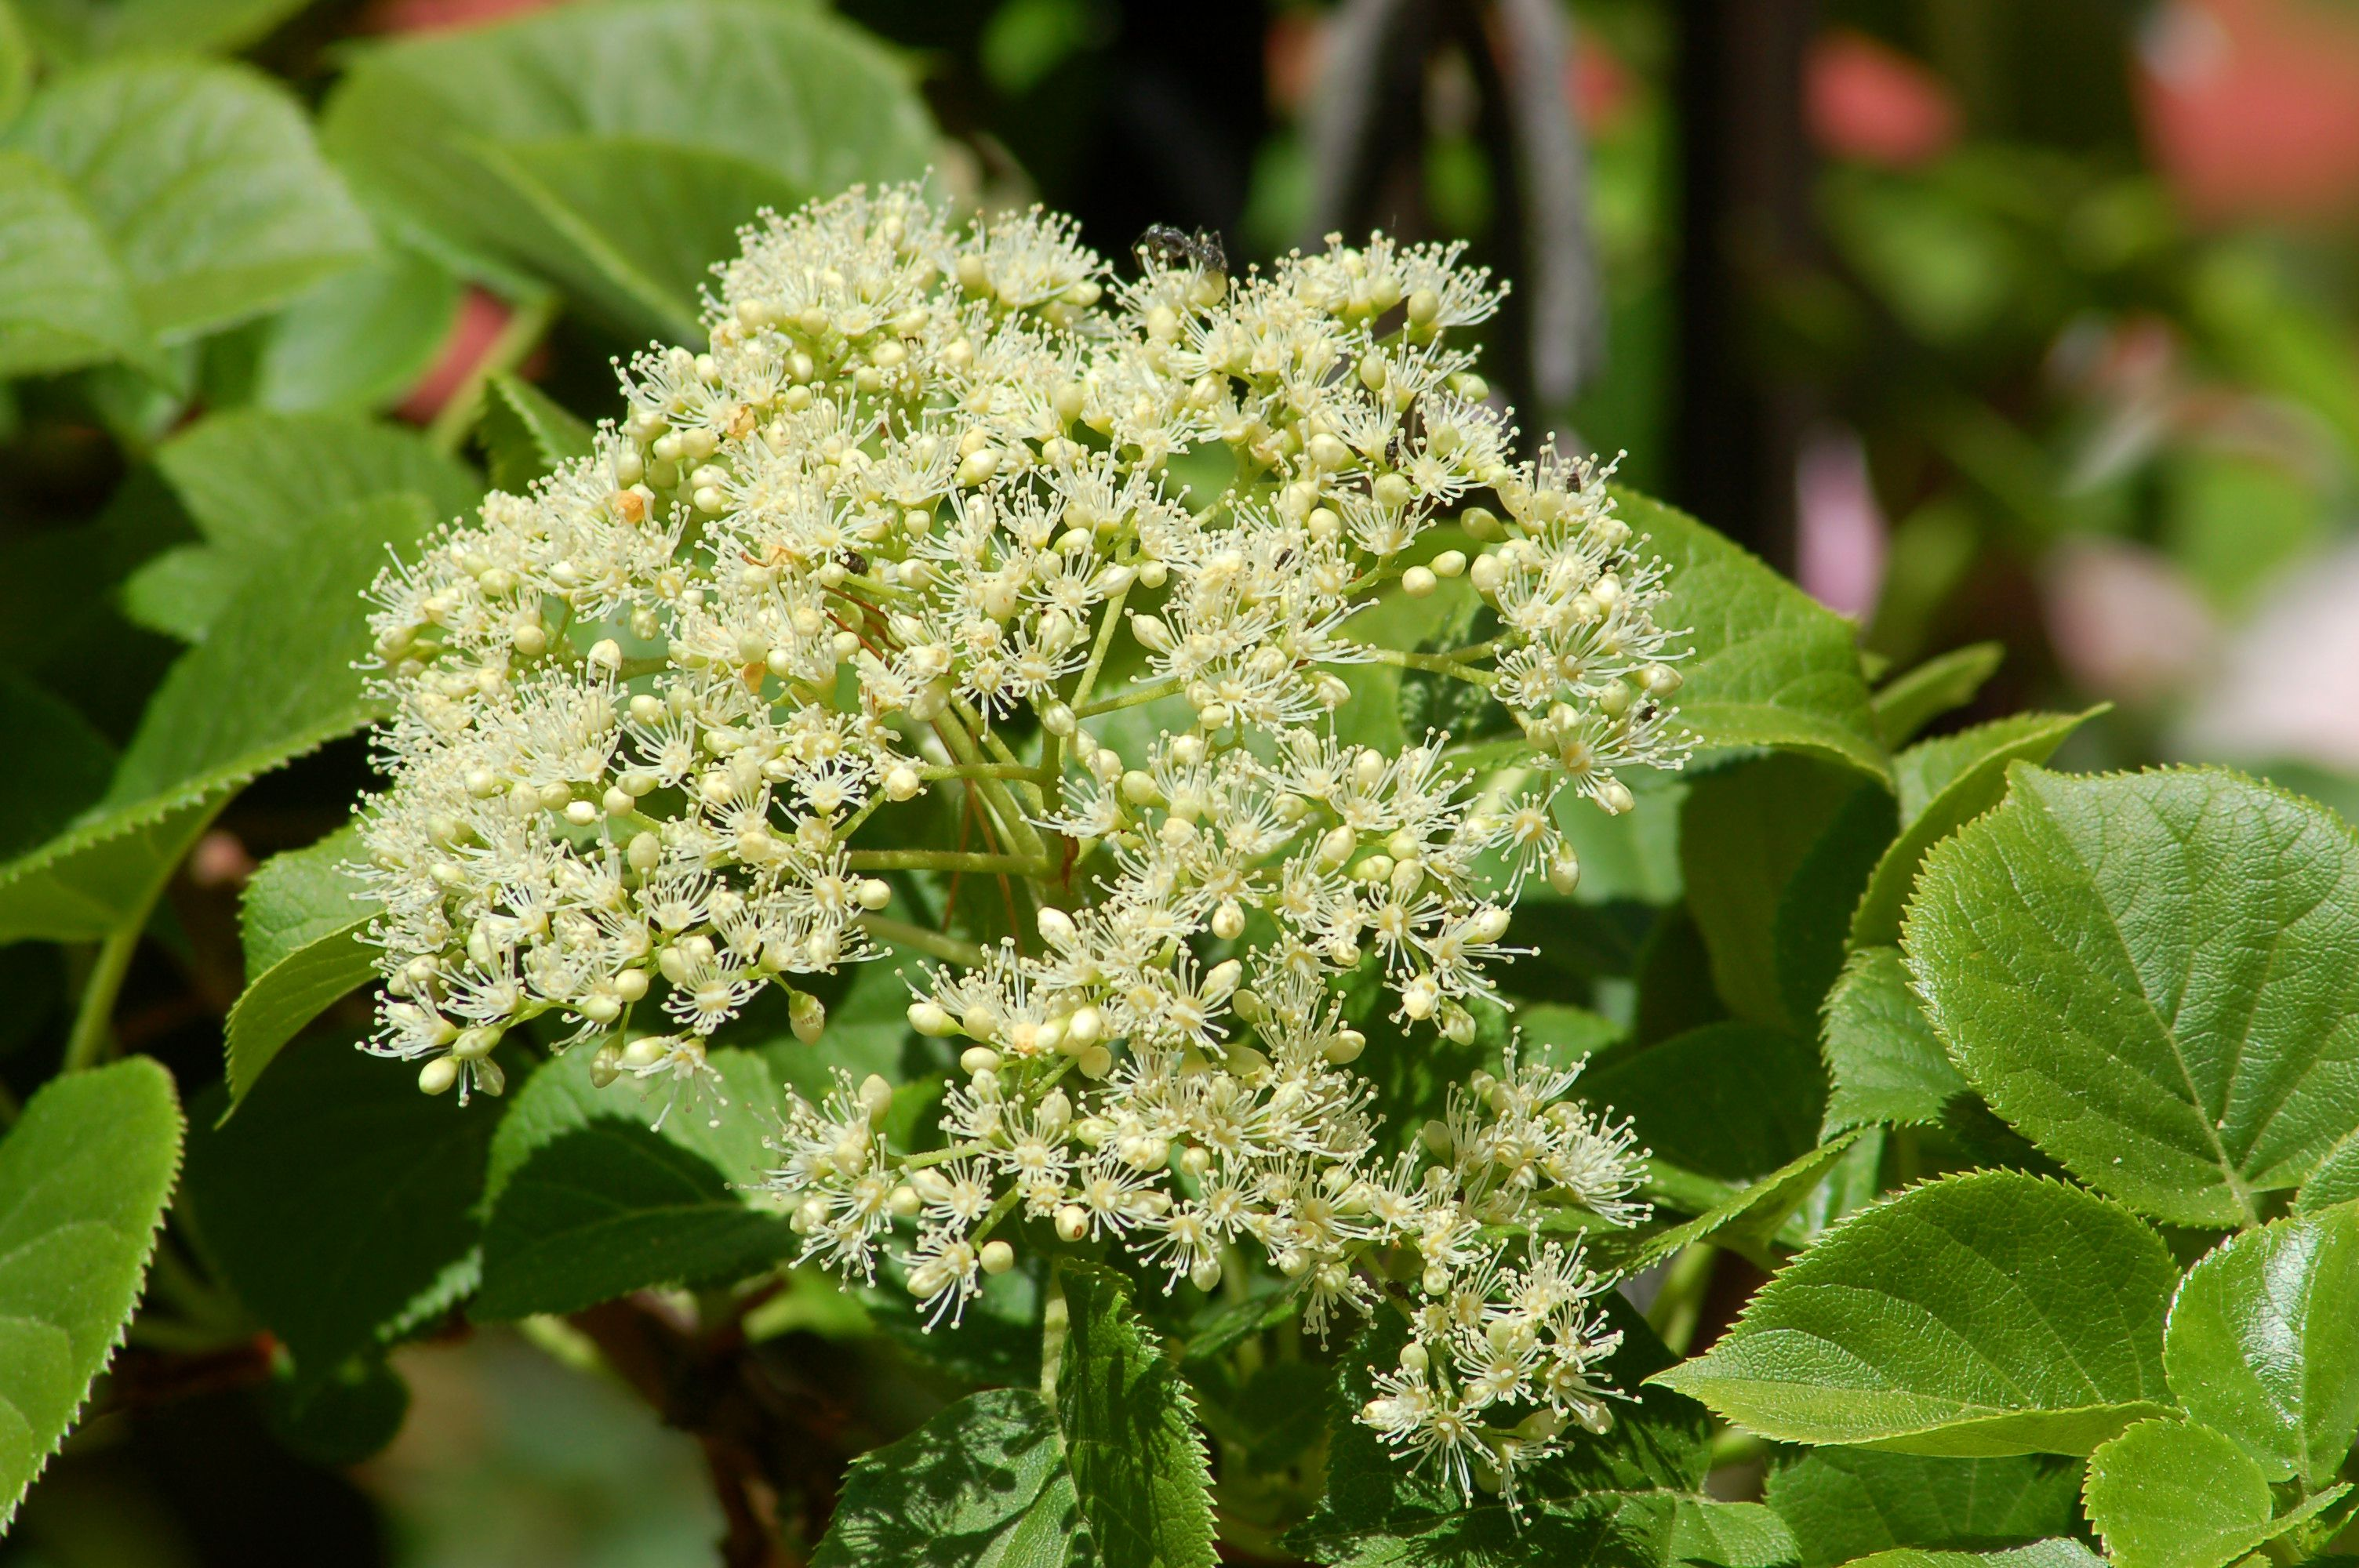 Climbing hydrangeas hardy flowering vines for shade dhlflorist Images